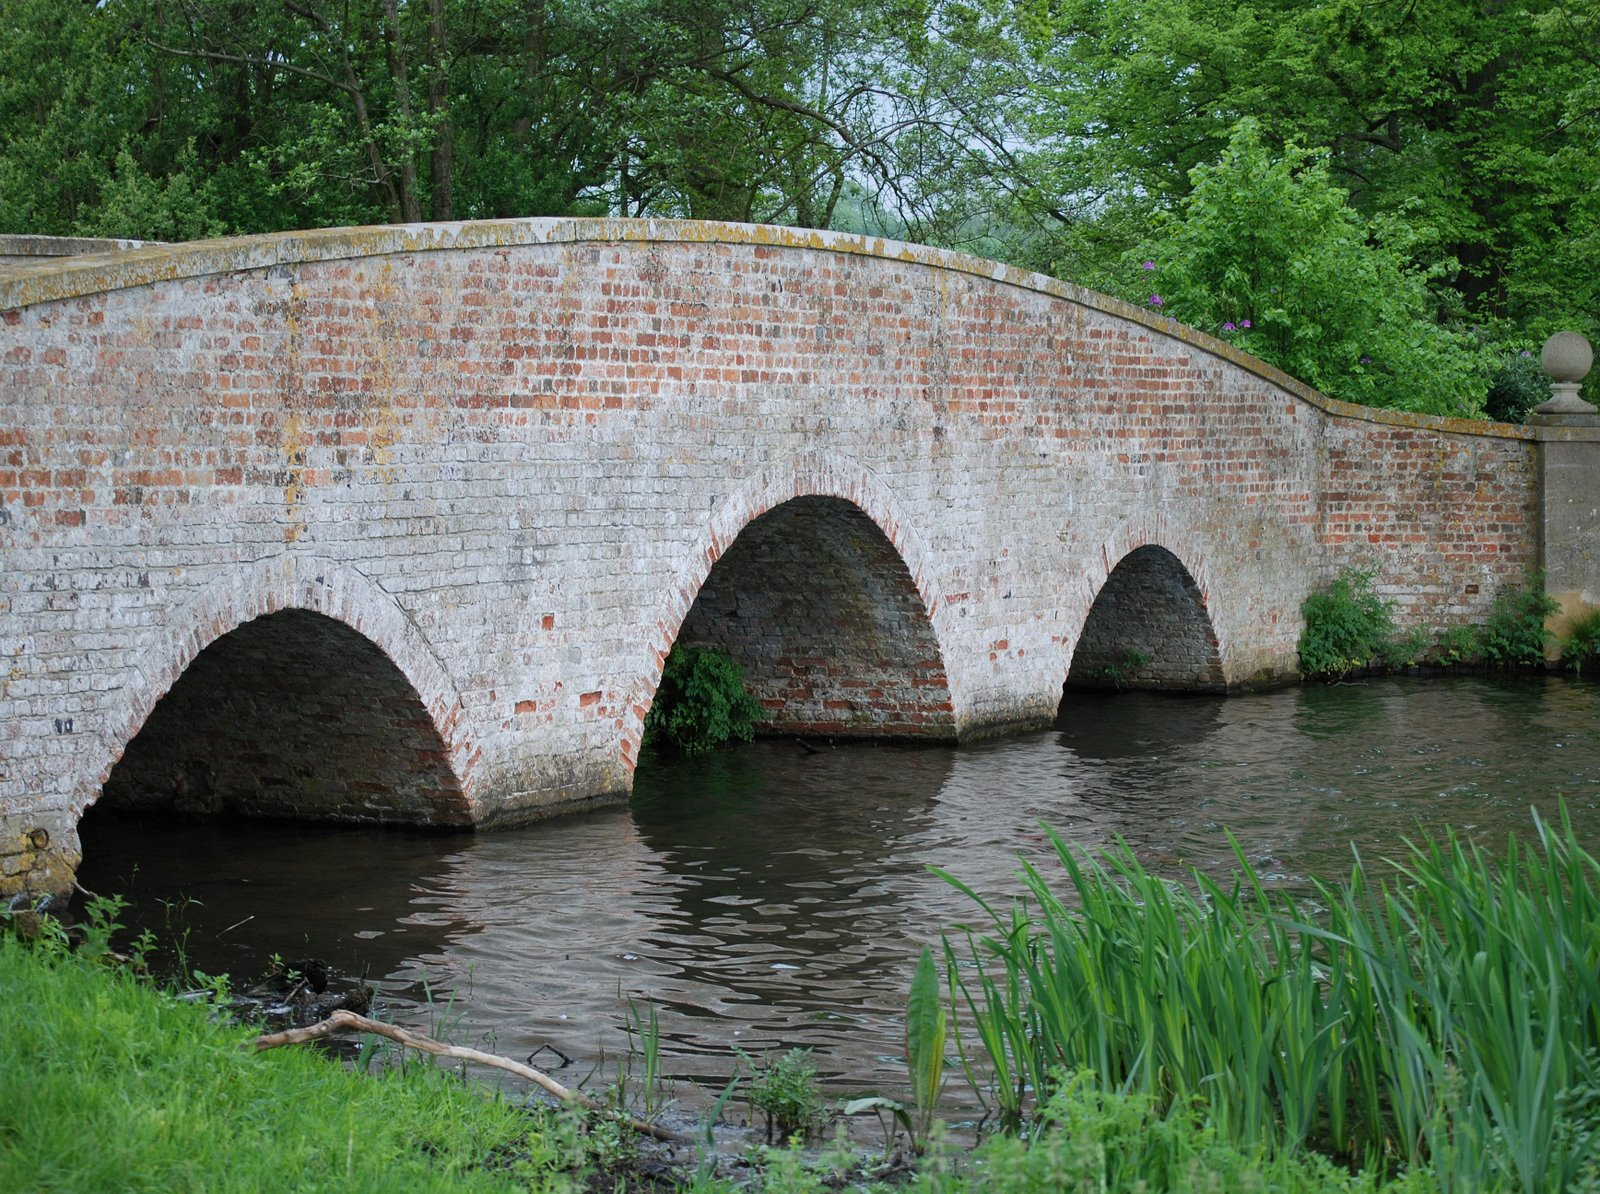 bridge over tundry pond, dogmersfield park, hampshire